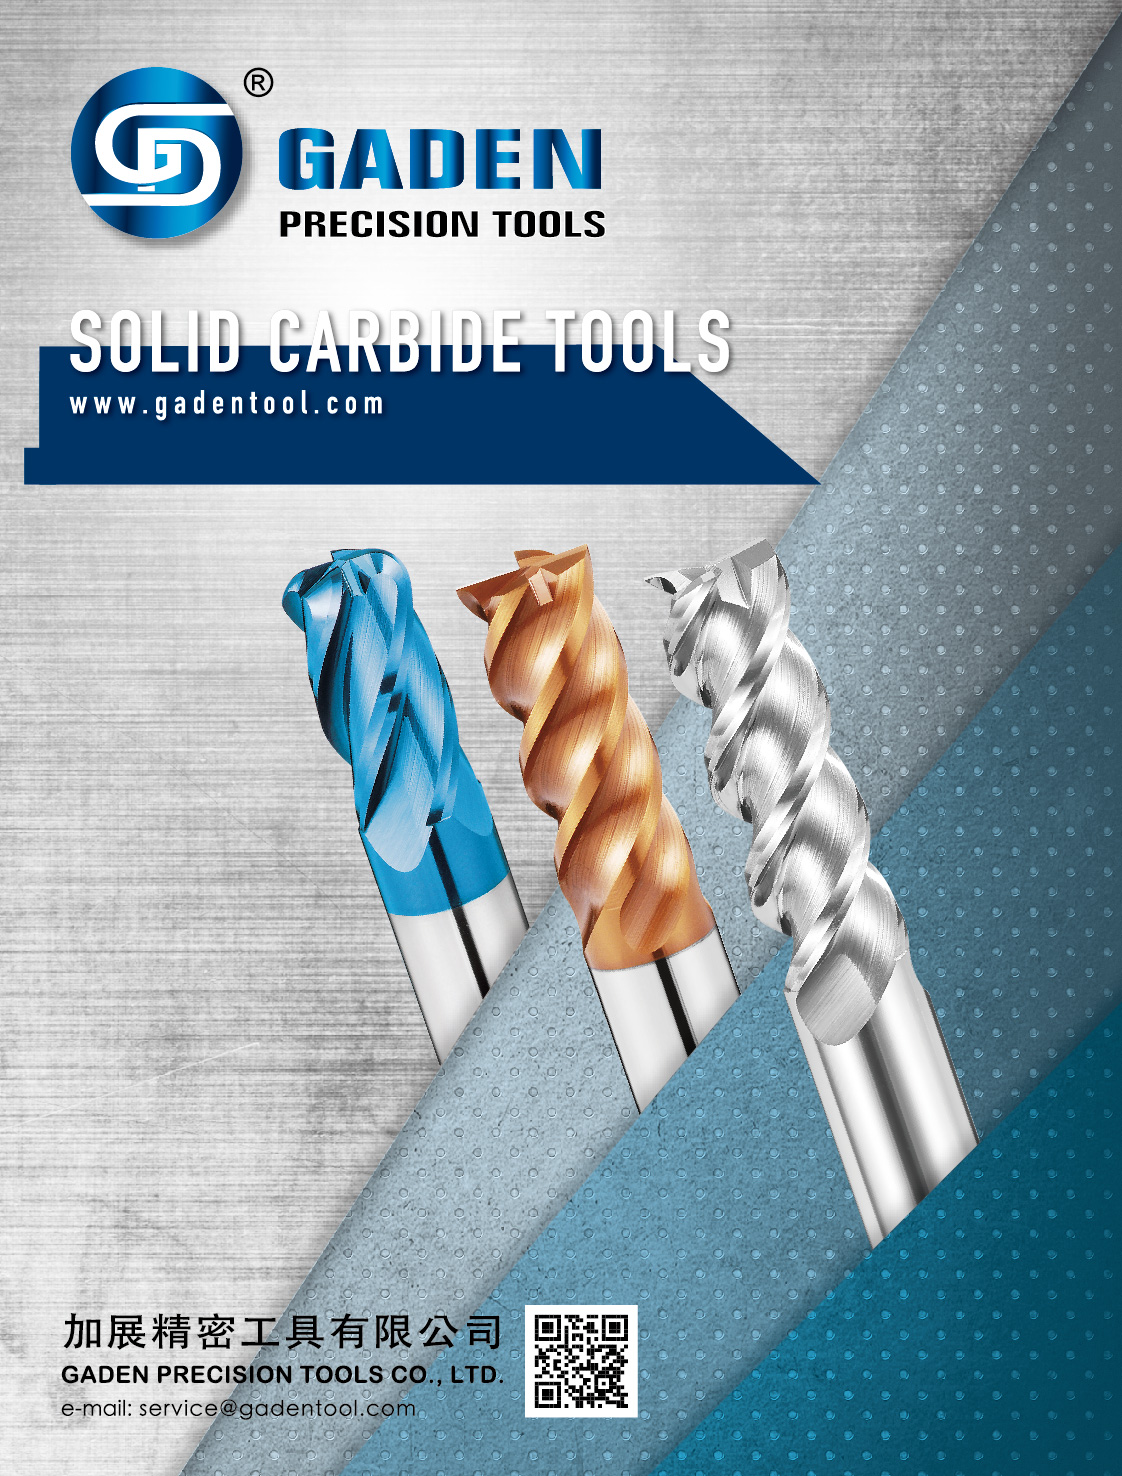 GADEN PRECISION TOOLS CO., LTD.